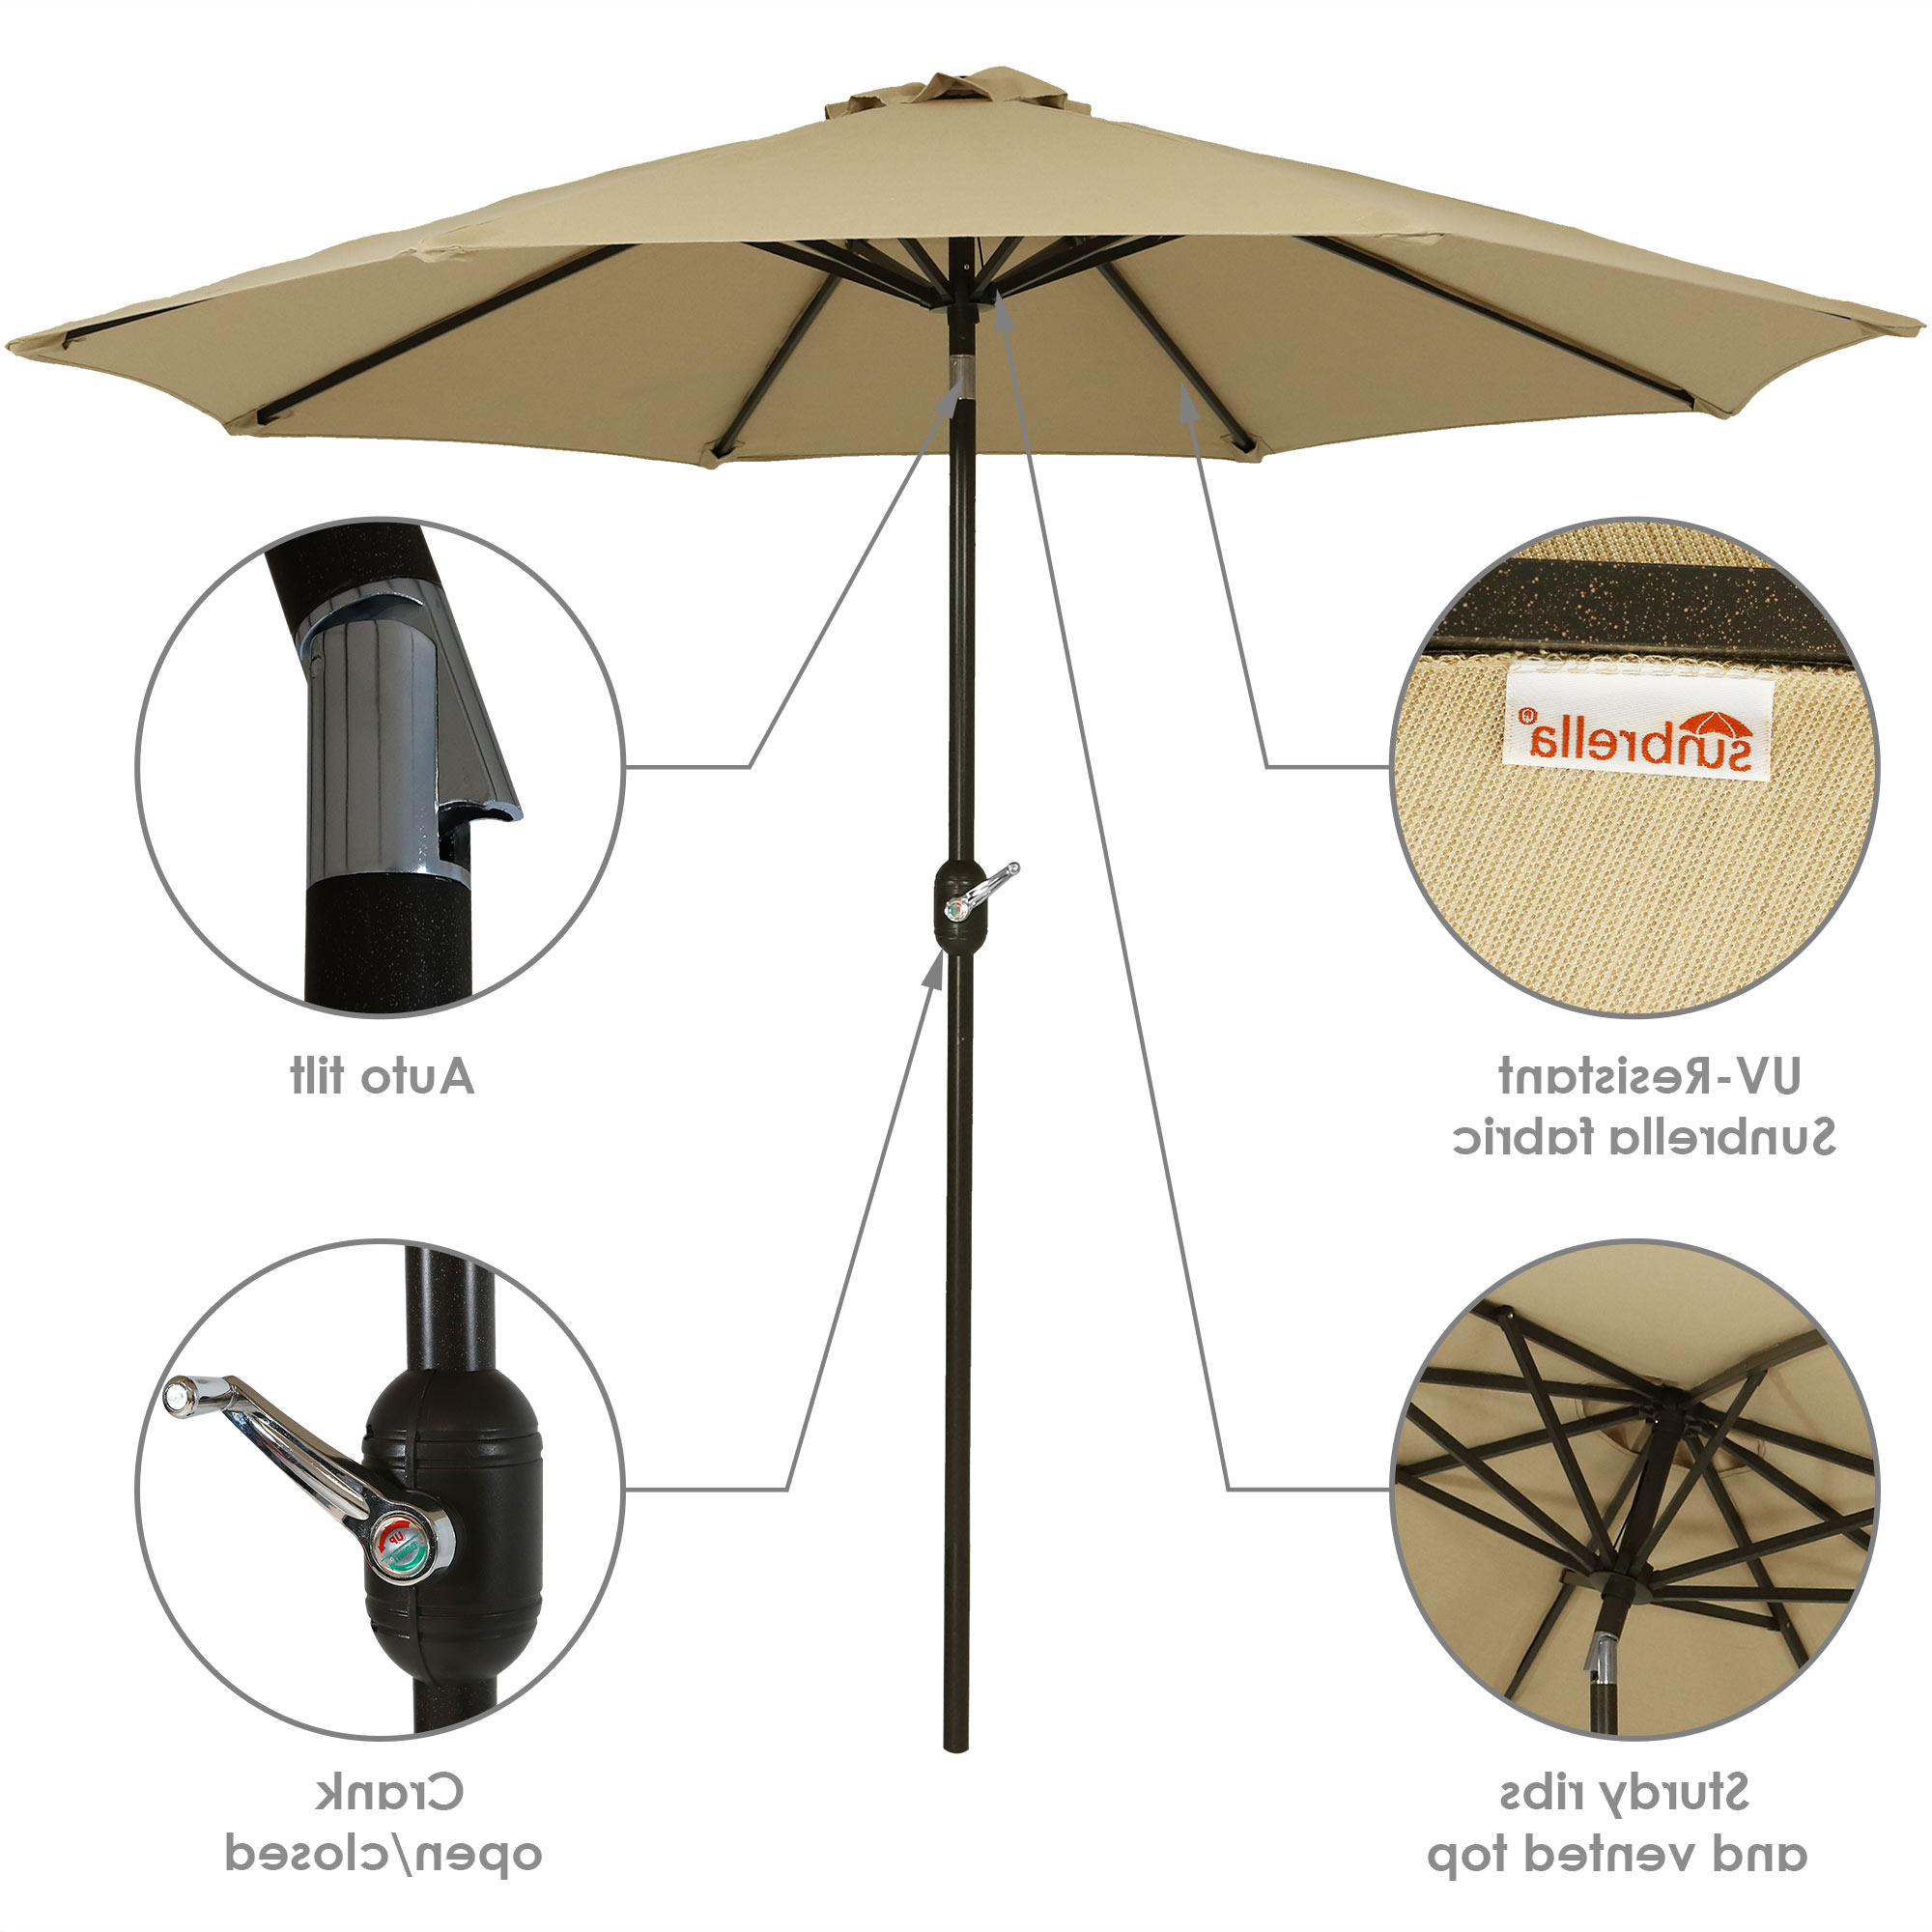 Sunnydaze Sunbrella Patio Umbrella With Auto Tilt And Crank, 9 Foot Outdoor  Market Umbrella, Rust Resistant Aluminum, Sunbrella Beige With Newest Julian Market Umbrellas (View 18 of 20)